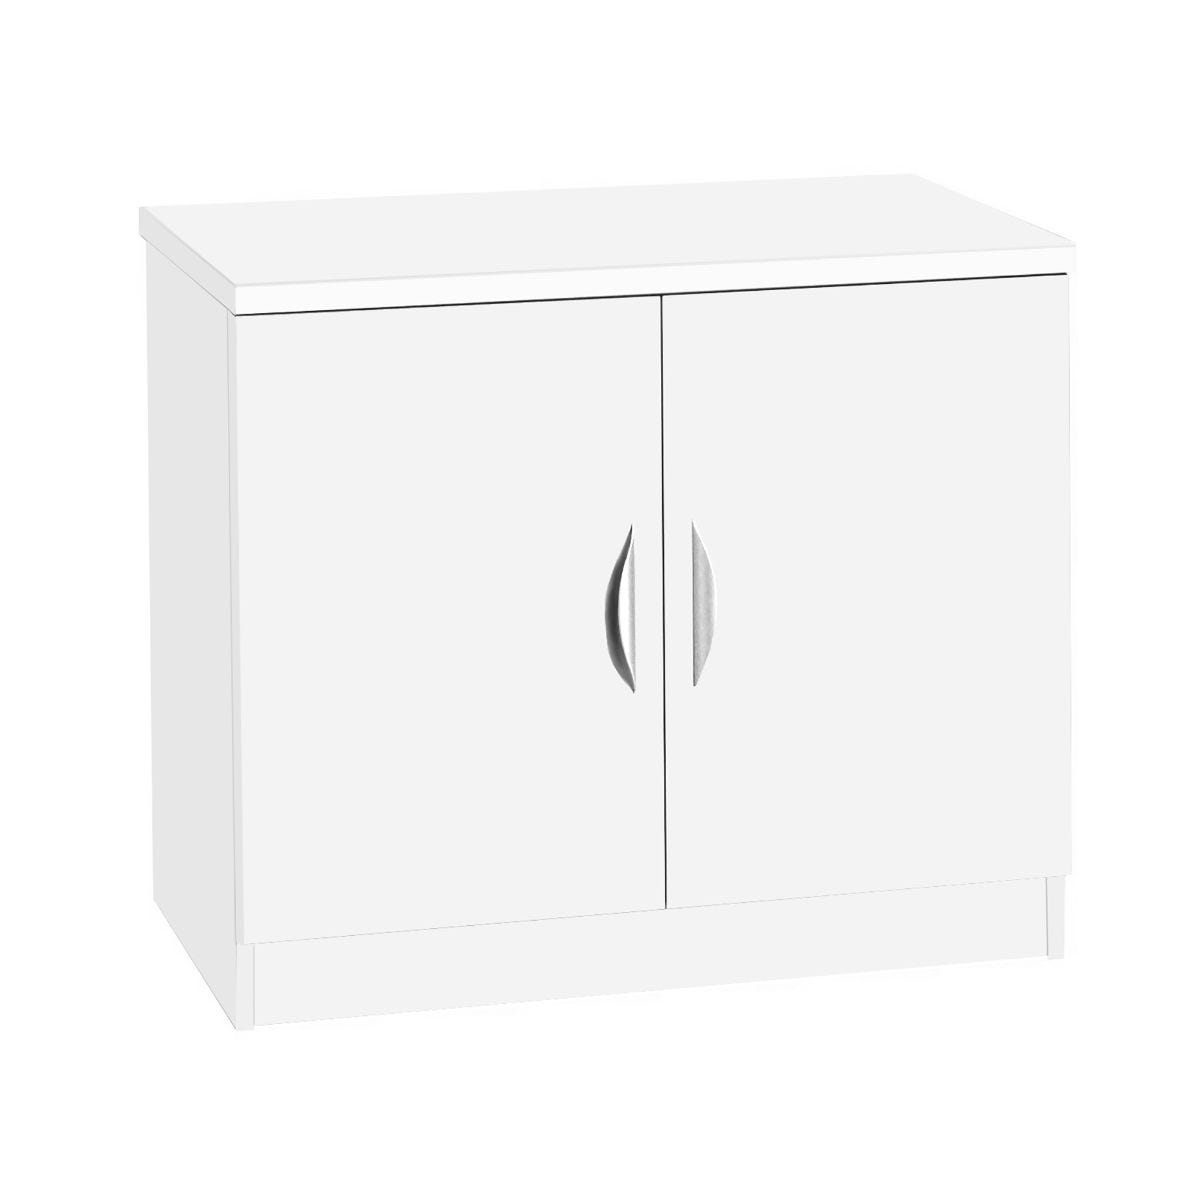 R White Desk Height Cupboard 85cm White Satin, White Satin